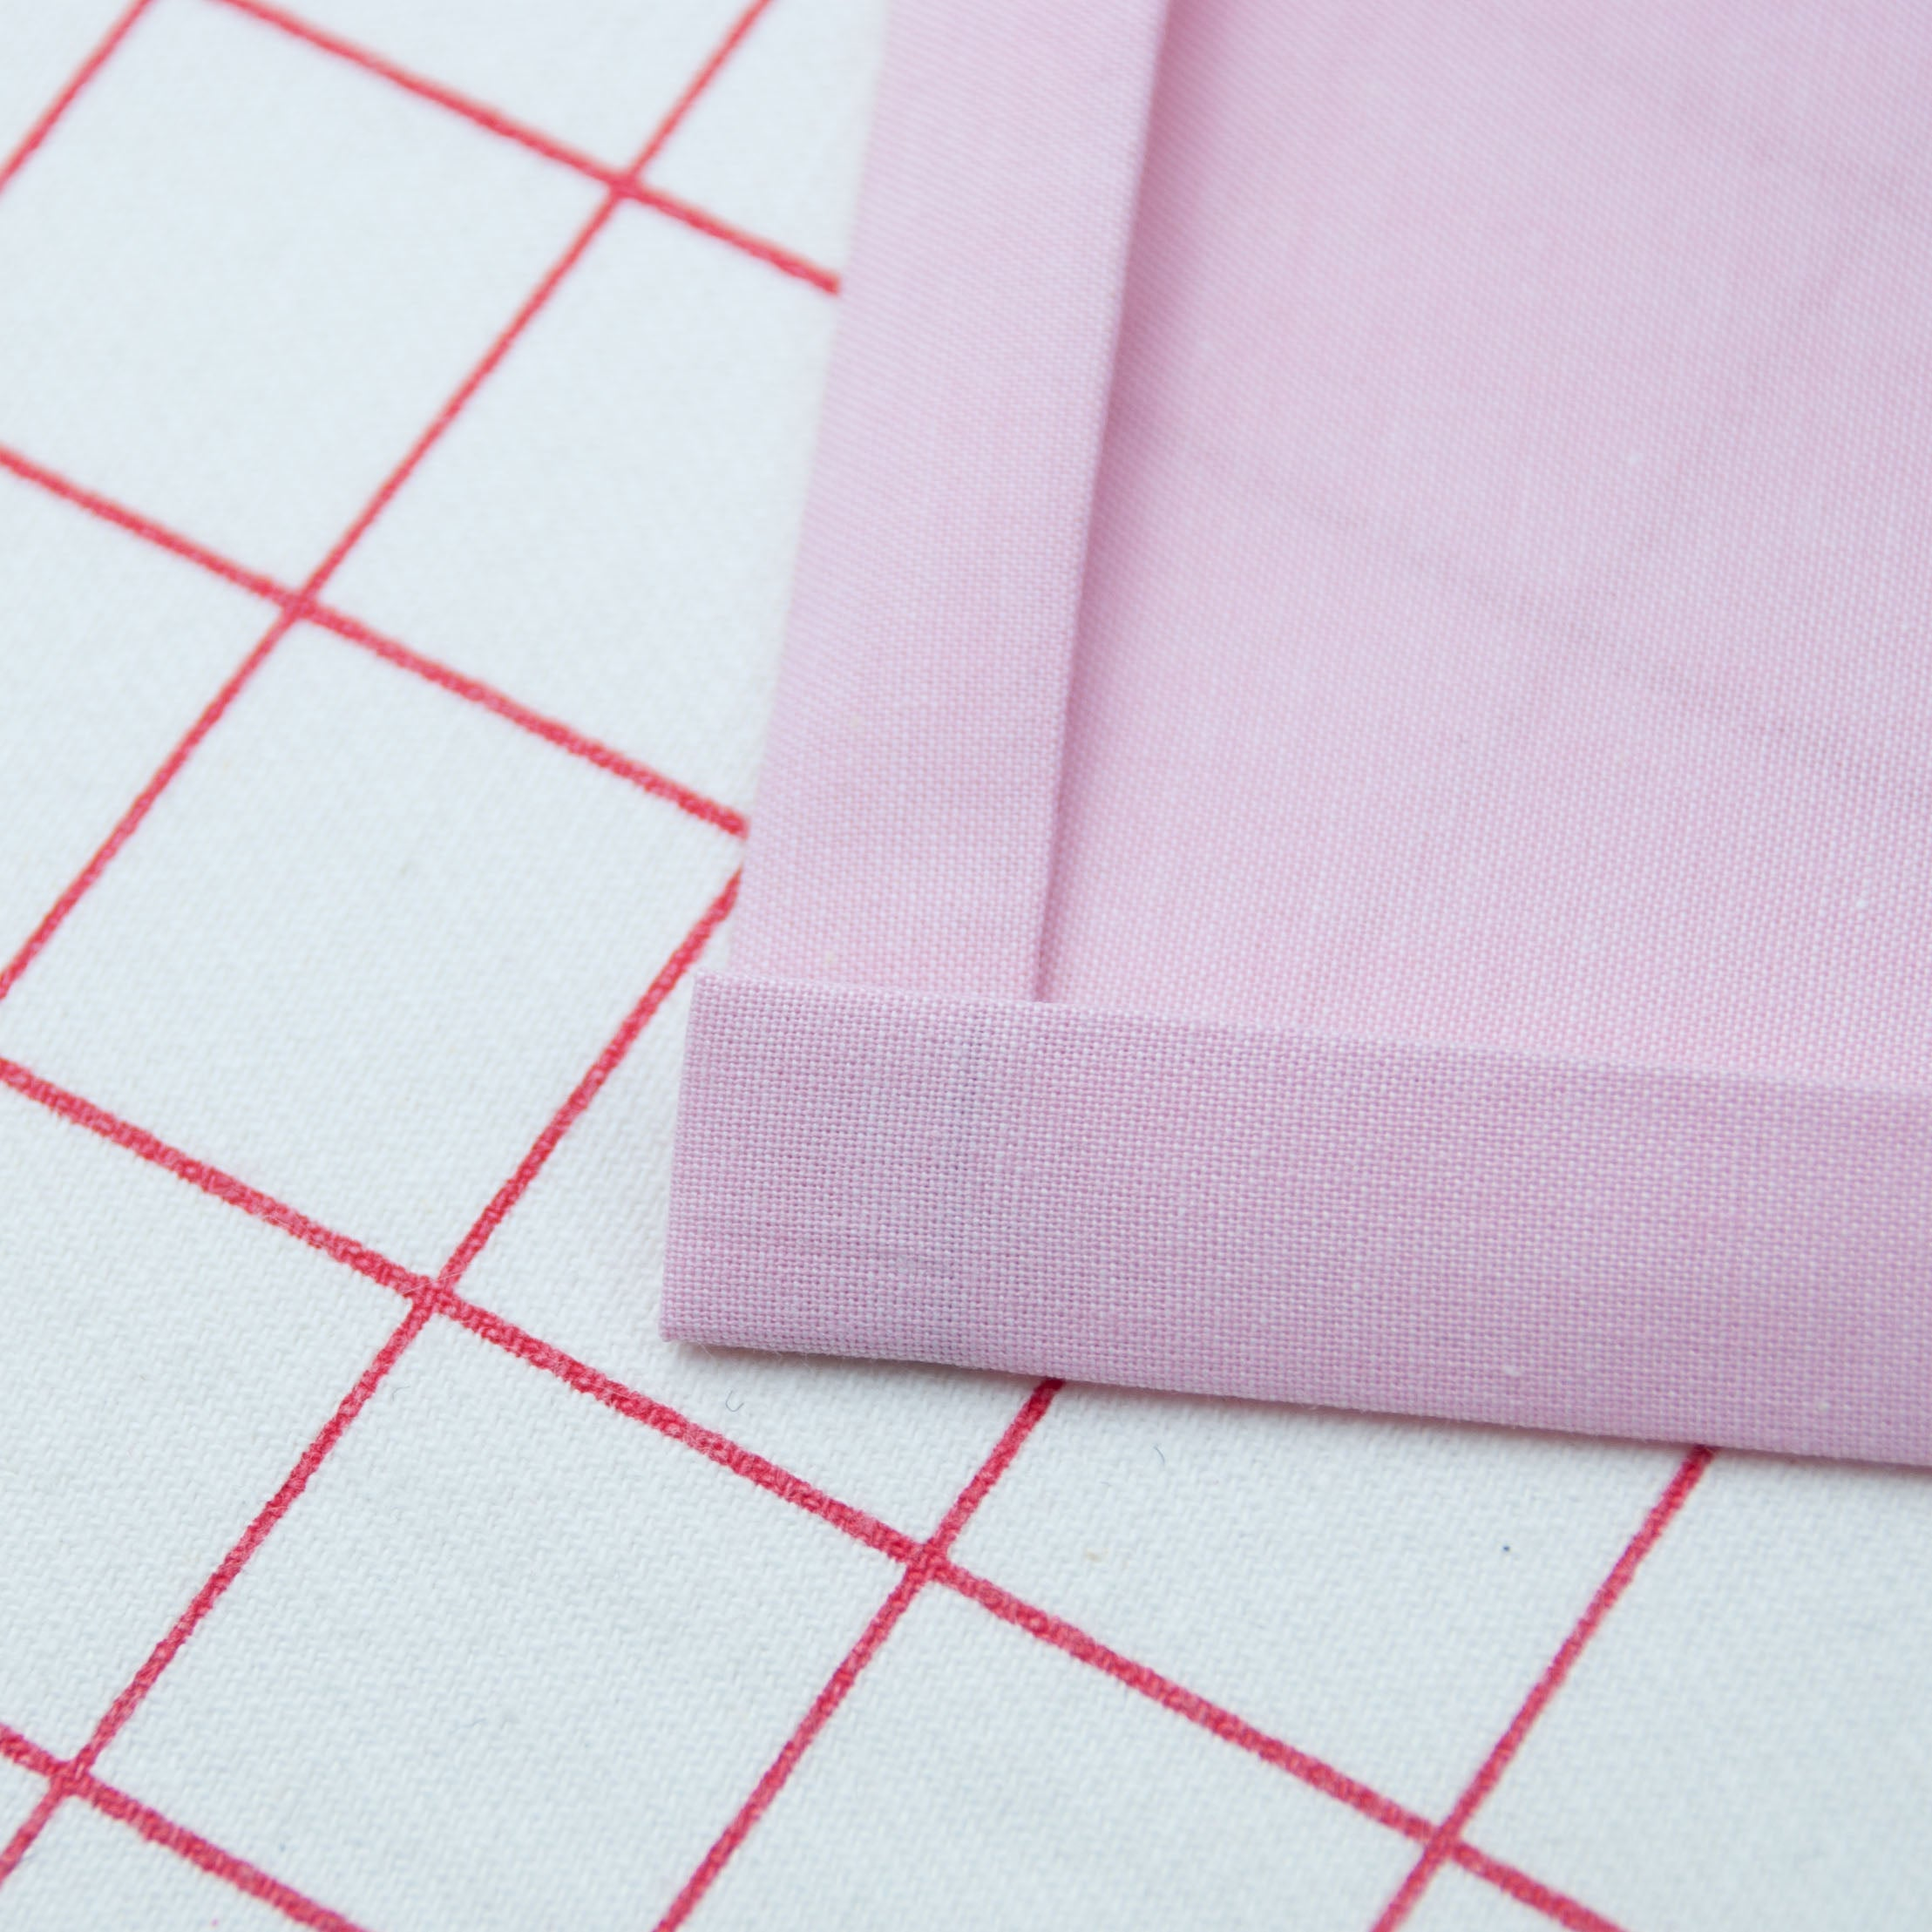 Sew A Napkin The Splendid Stitch